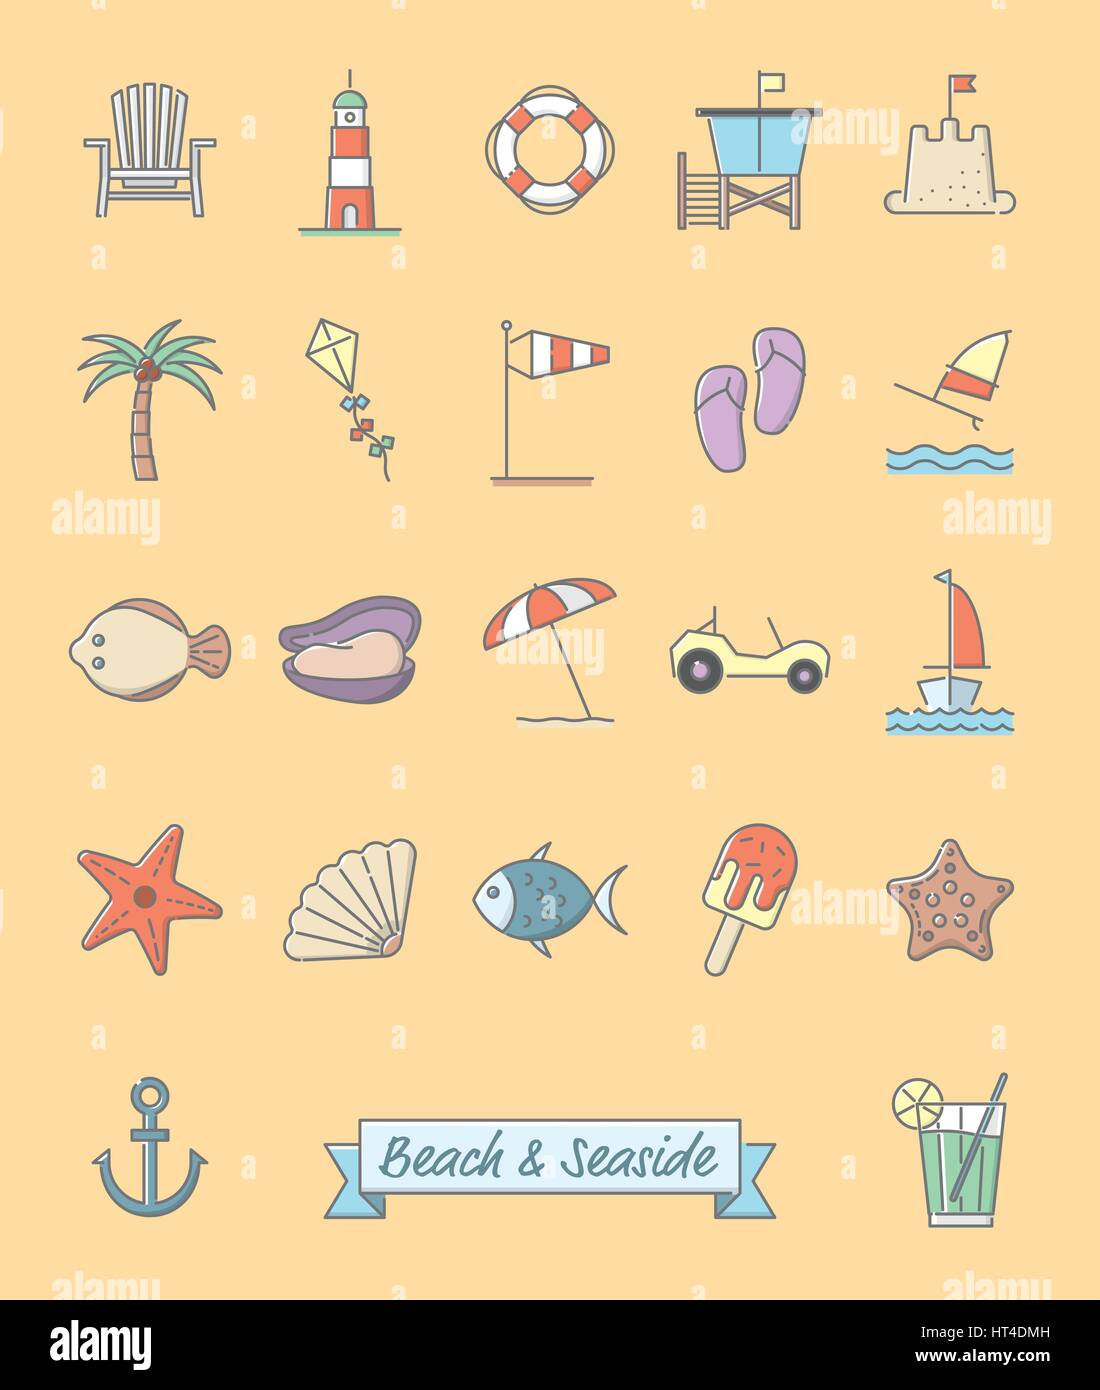 Collection of 22 beach and seaside related symbols, gray outline and pastel color fill - Stock Vector